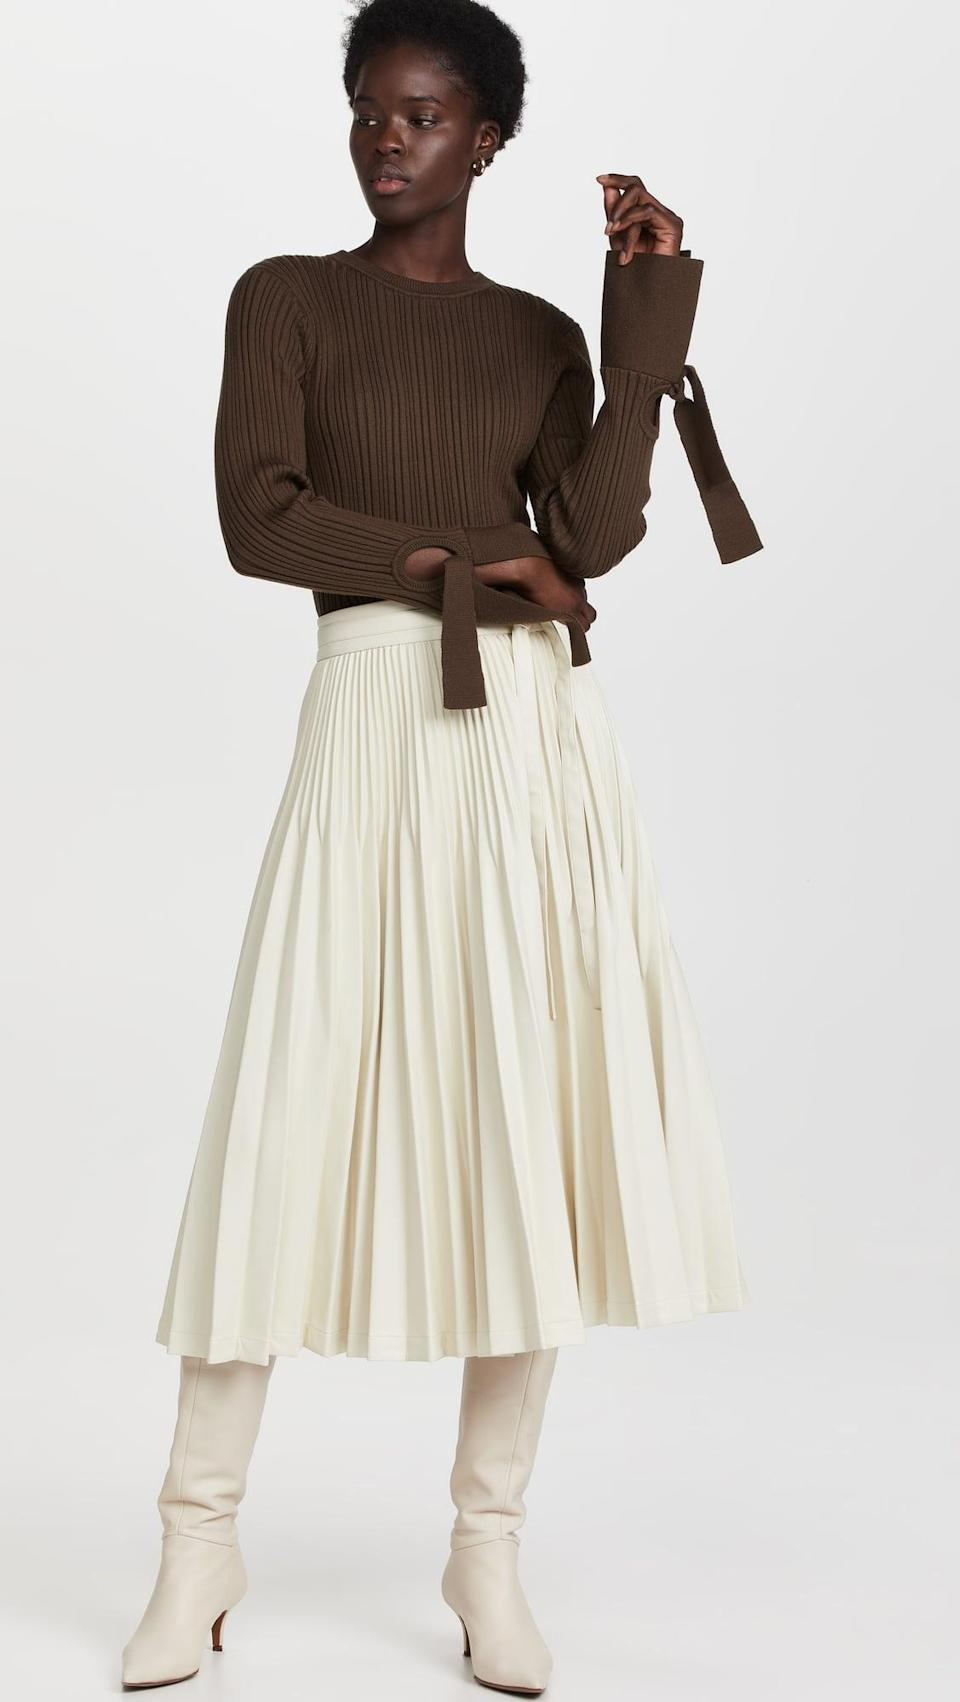 <p>This <span>3.1 Phillip Lim Vegan Leather Sunburst Pleated Skirt</span> ($550) isn't your typical leather skirt, and that's why we love it so much. The white leather is sleek and sophisticated.</p>